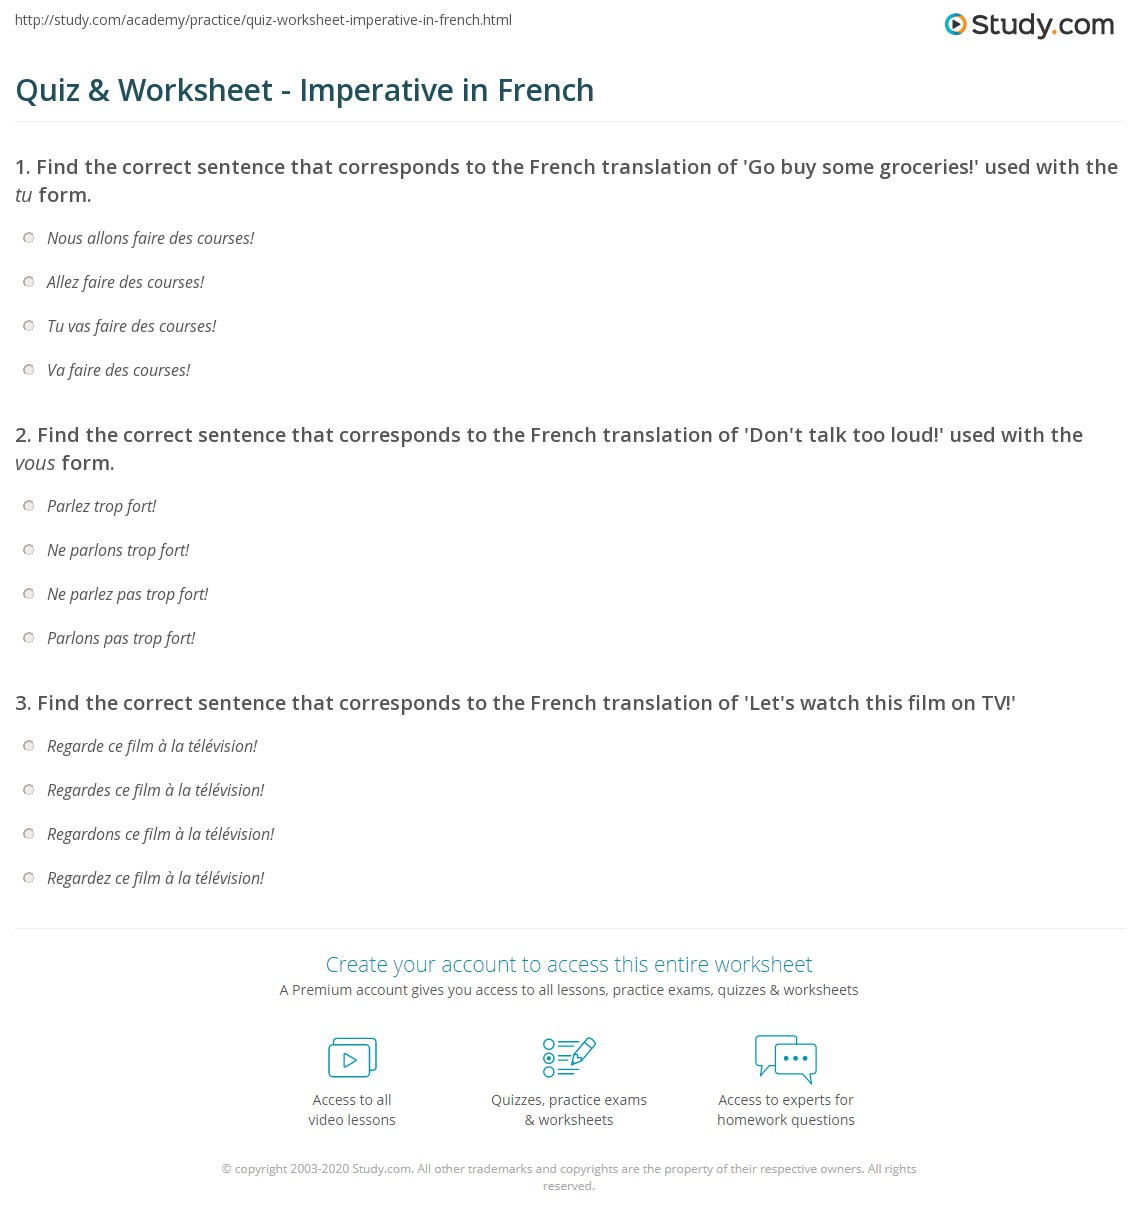 Quiz Worksheet Imperative In French Study